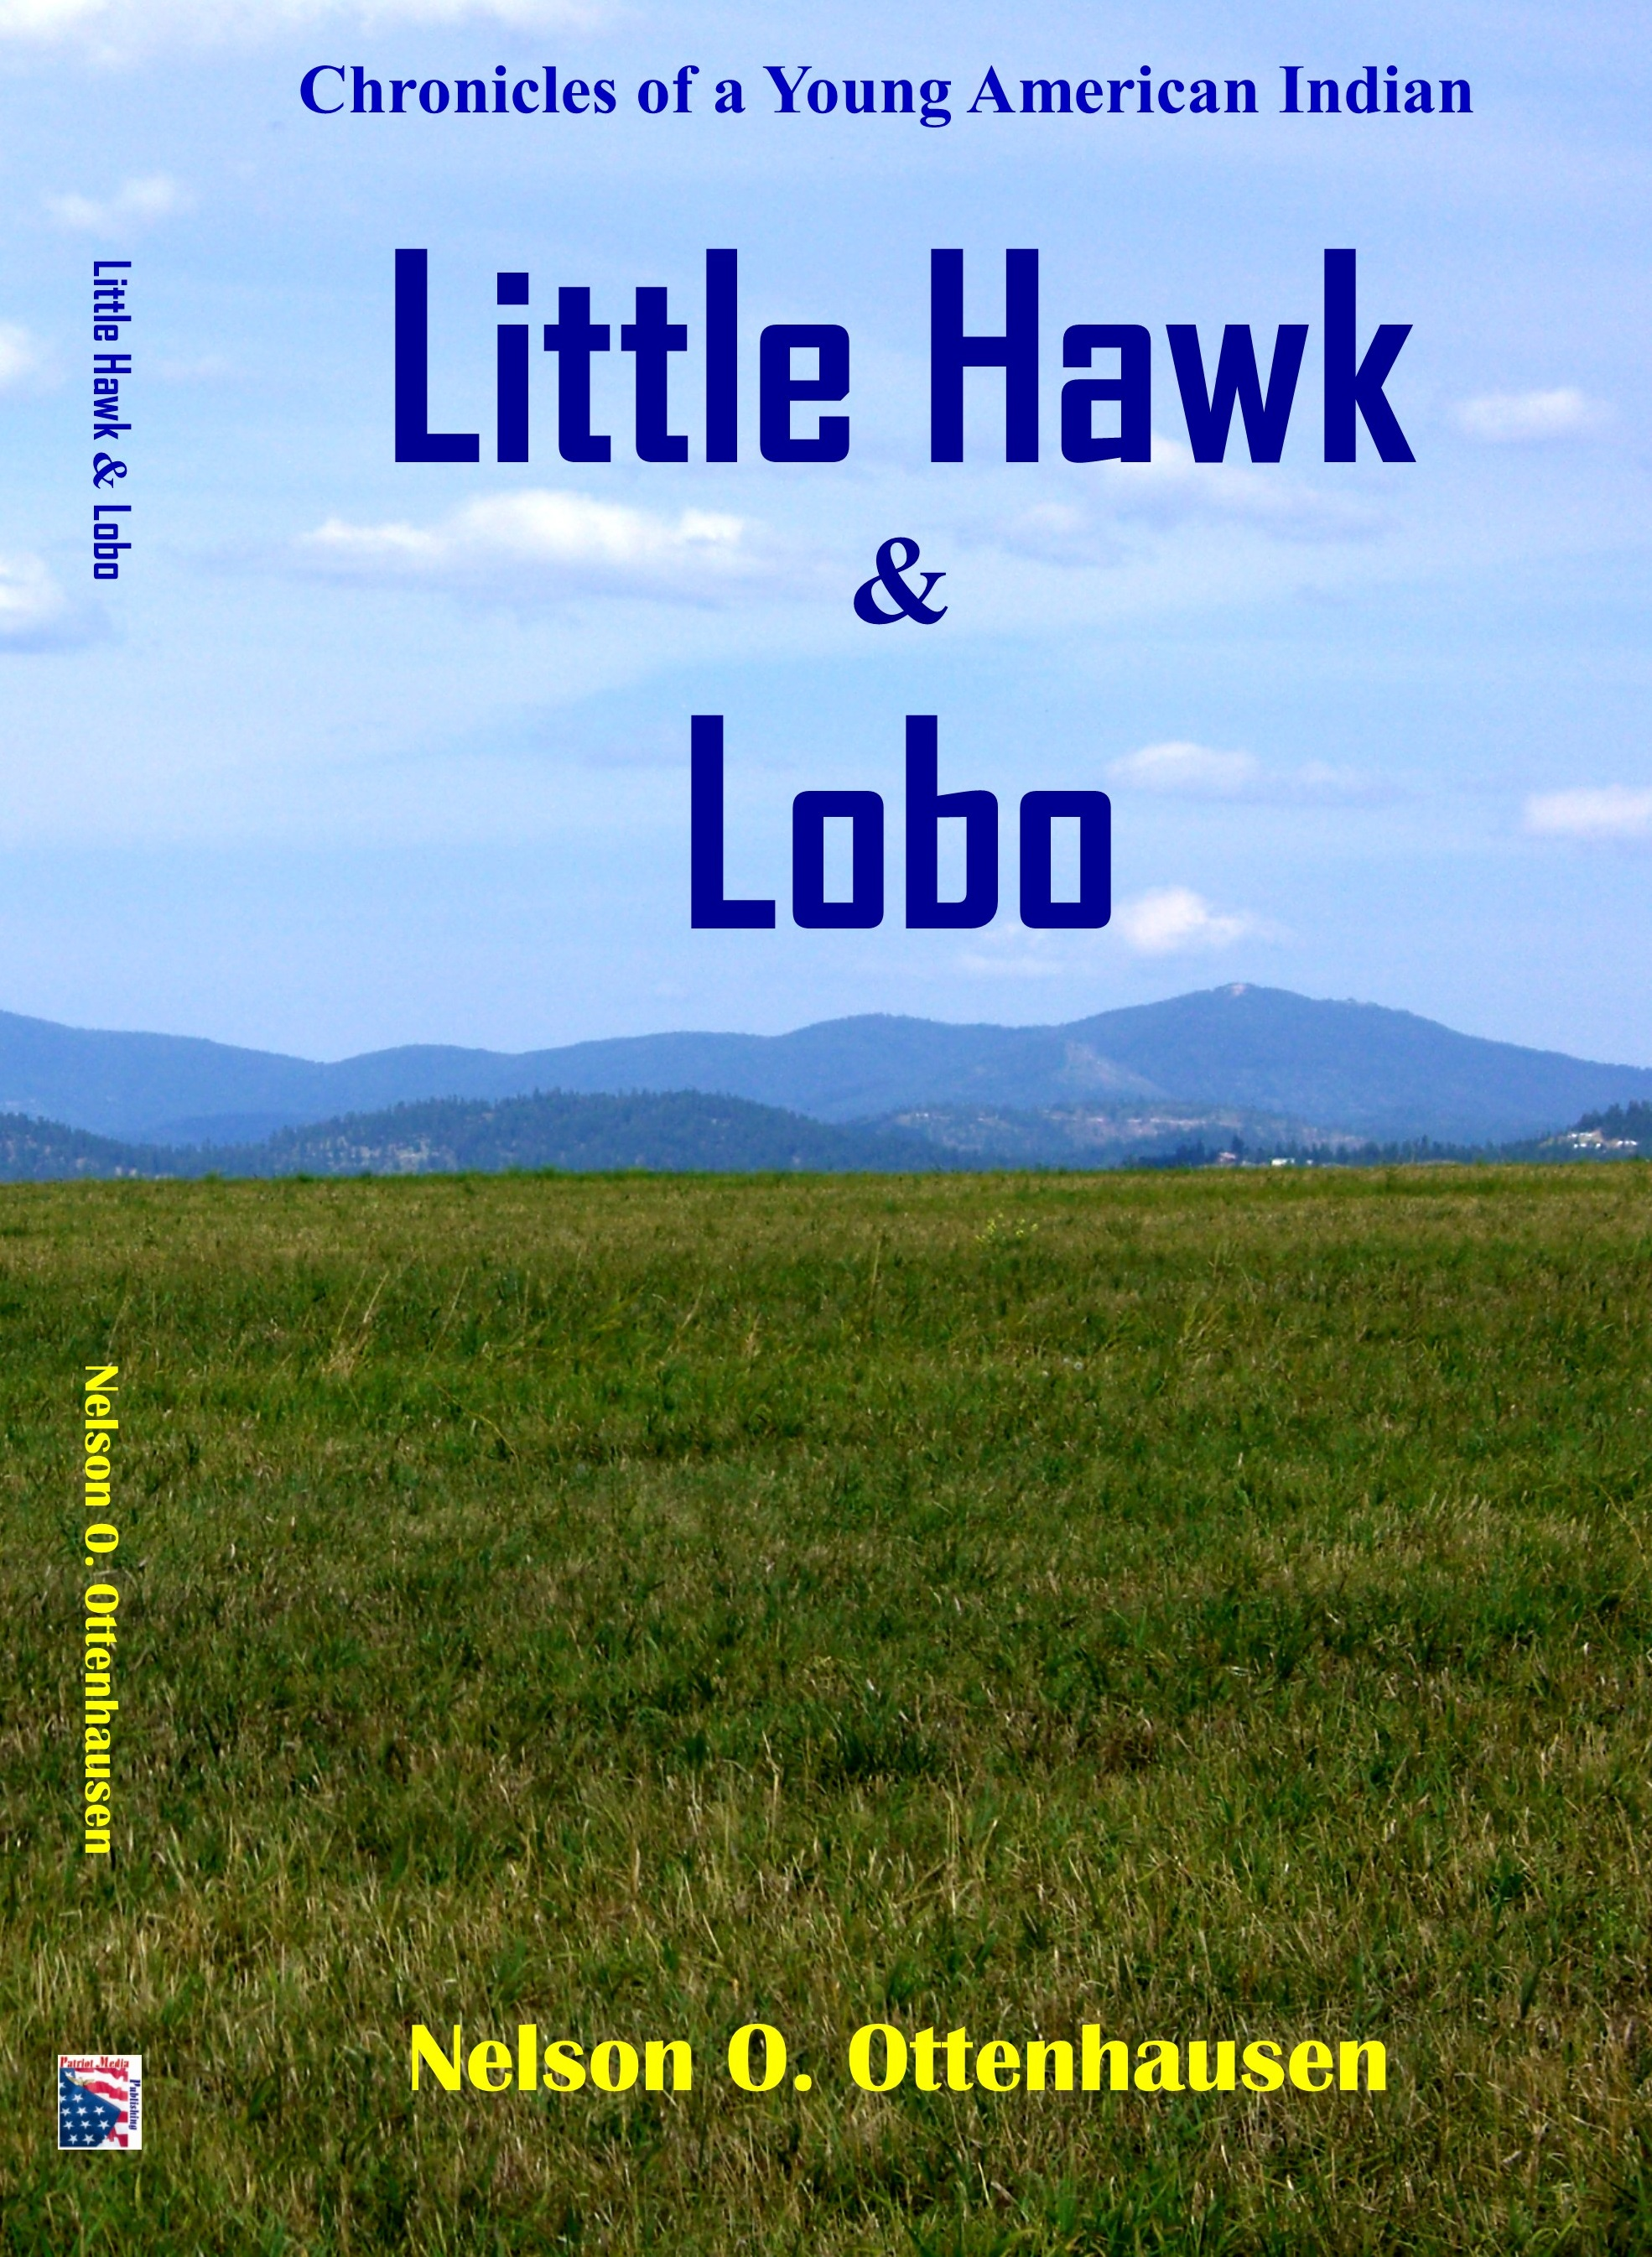 Little Hawk & Lobo